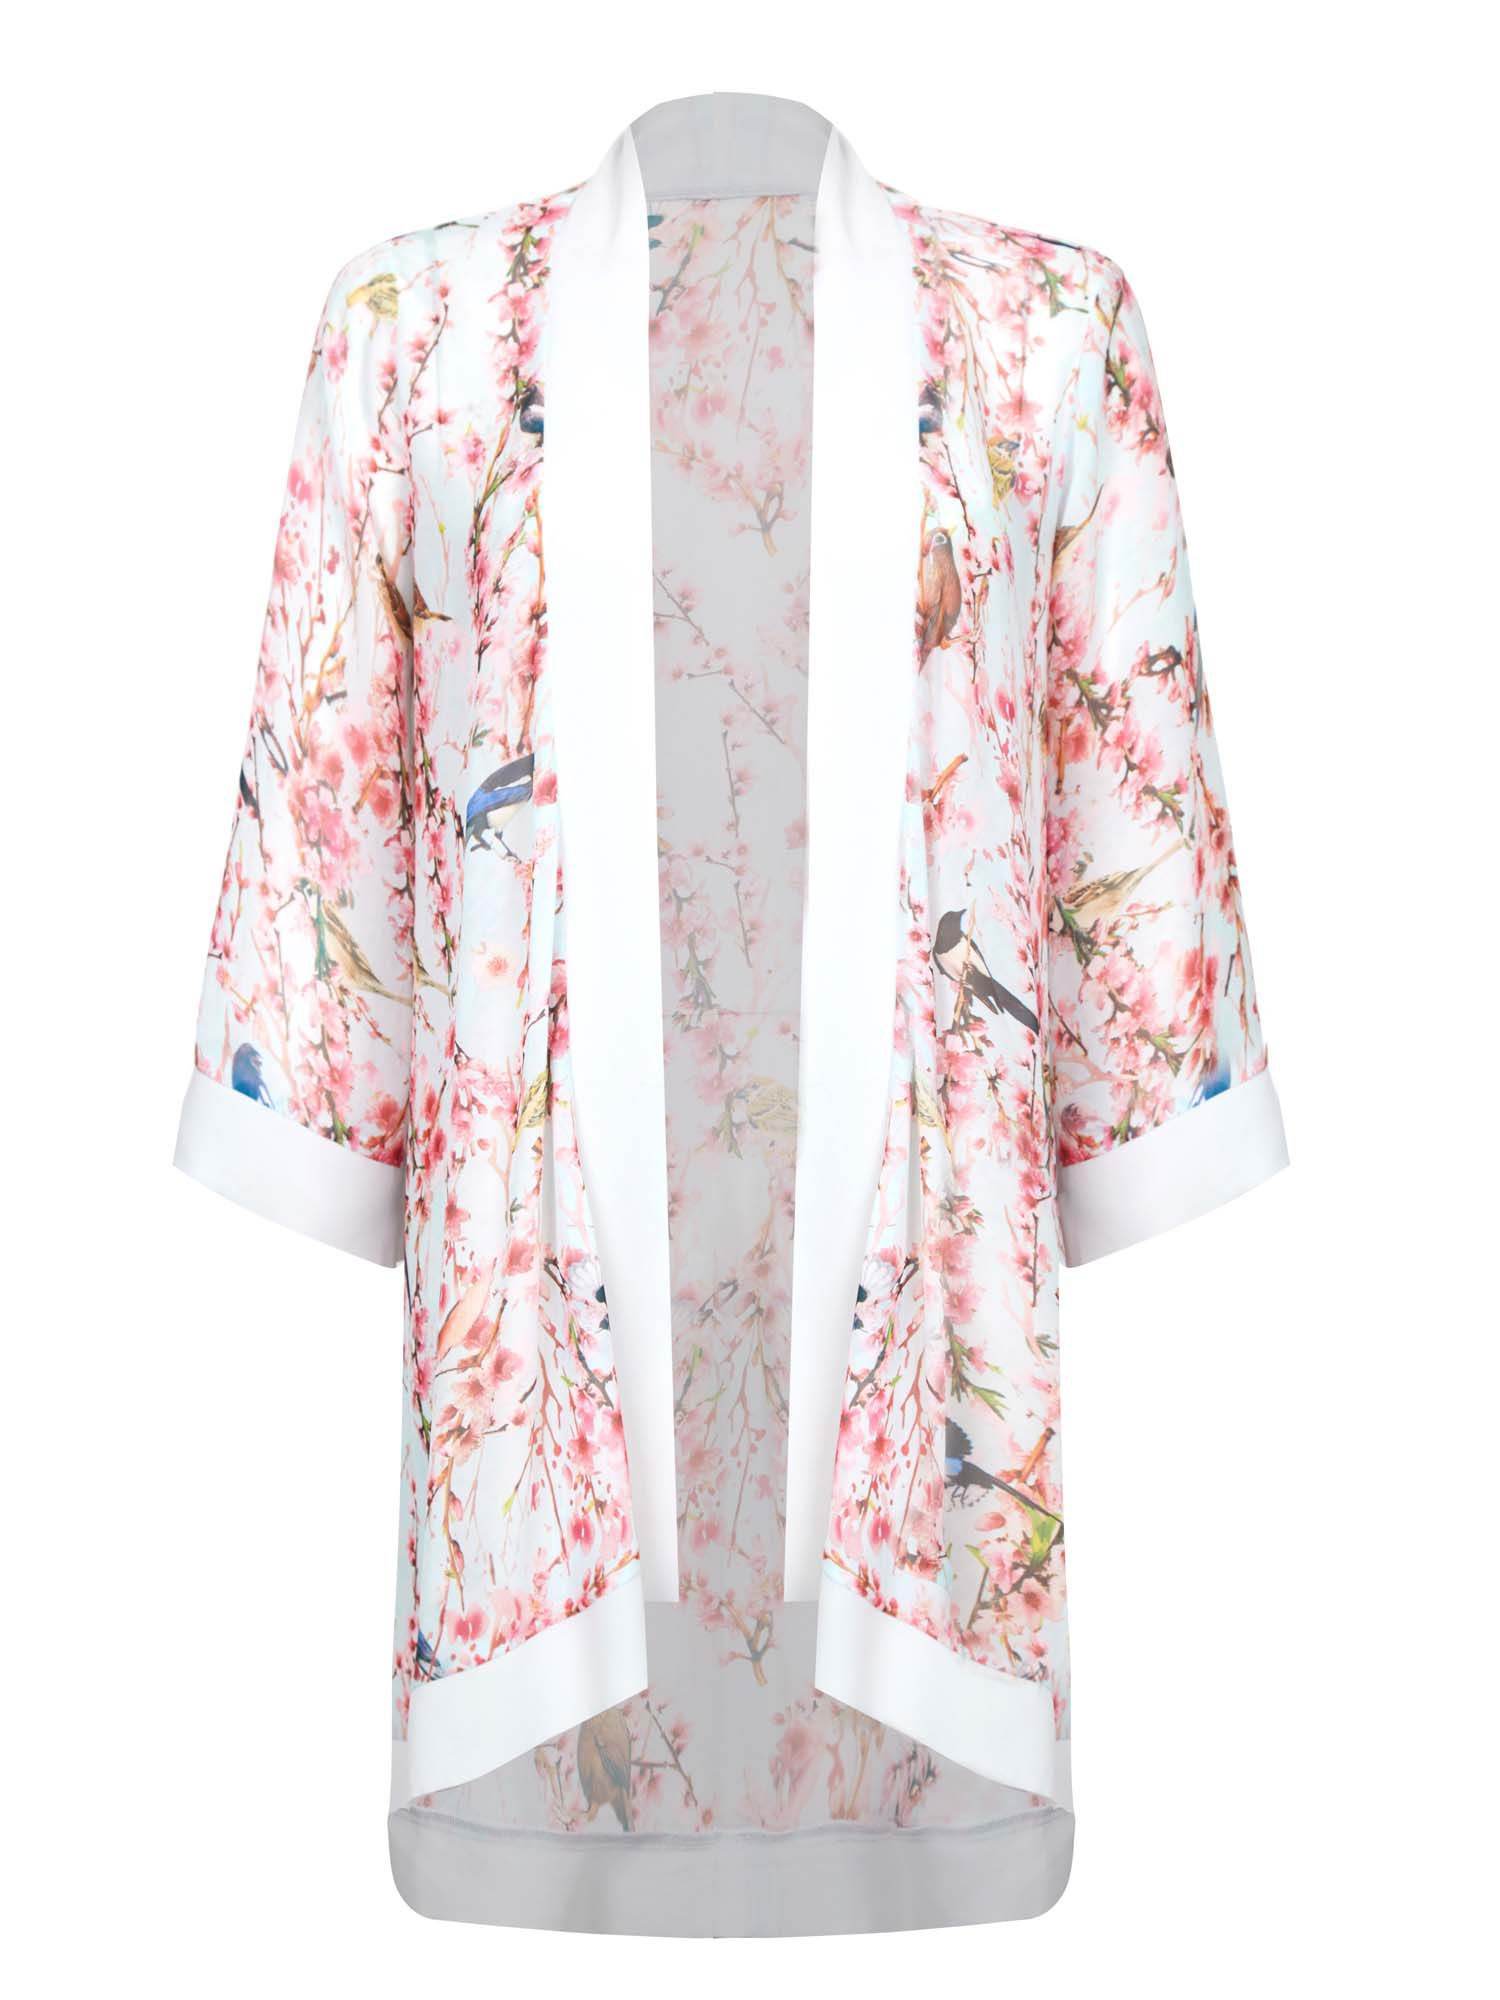 Kimono Sale! Select Fashion has a great range of kimono jackets and long kimonos available to keep you looking stylish and summery on holiday or at a festival. Cheap offers available online on getson.ga